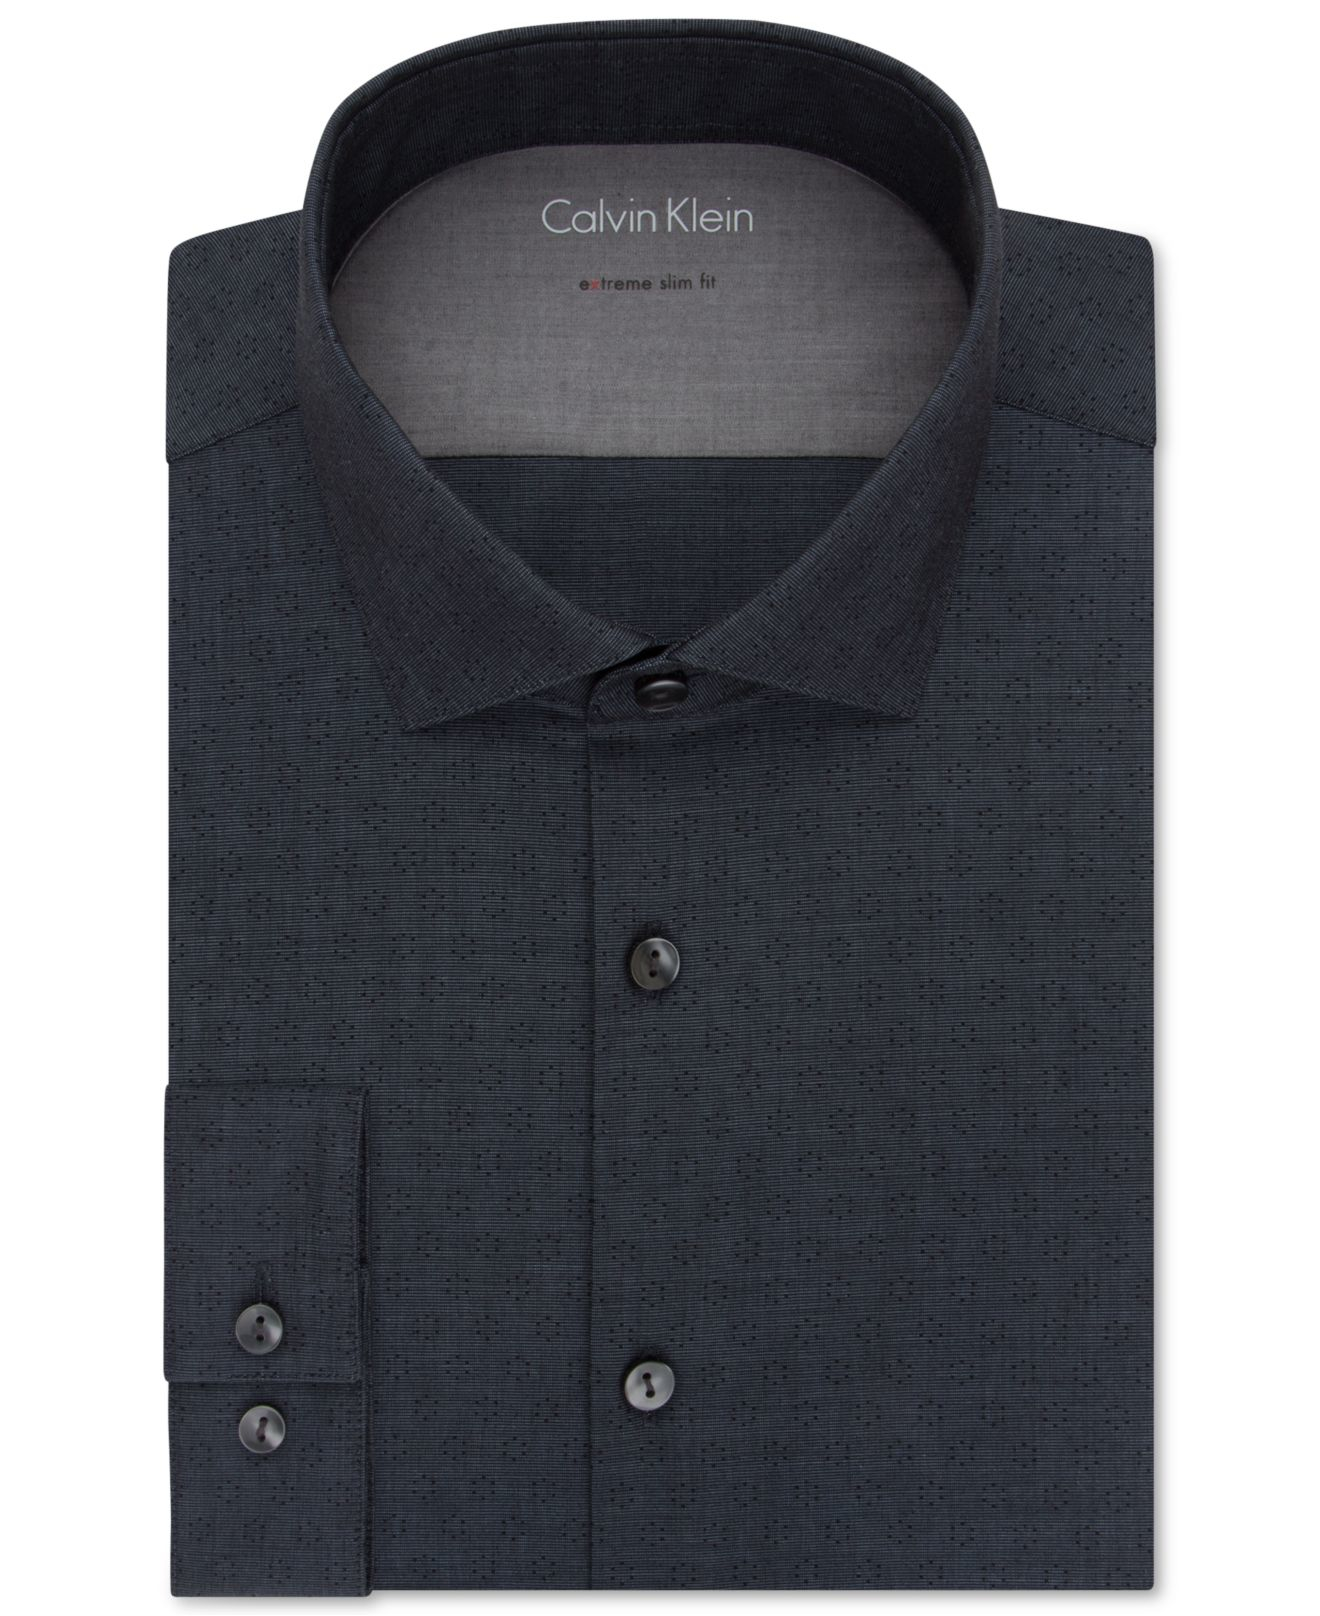 Lyst calvin klein x extra slim fit petrol patterned for Calvin klein x fit dress shirt